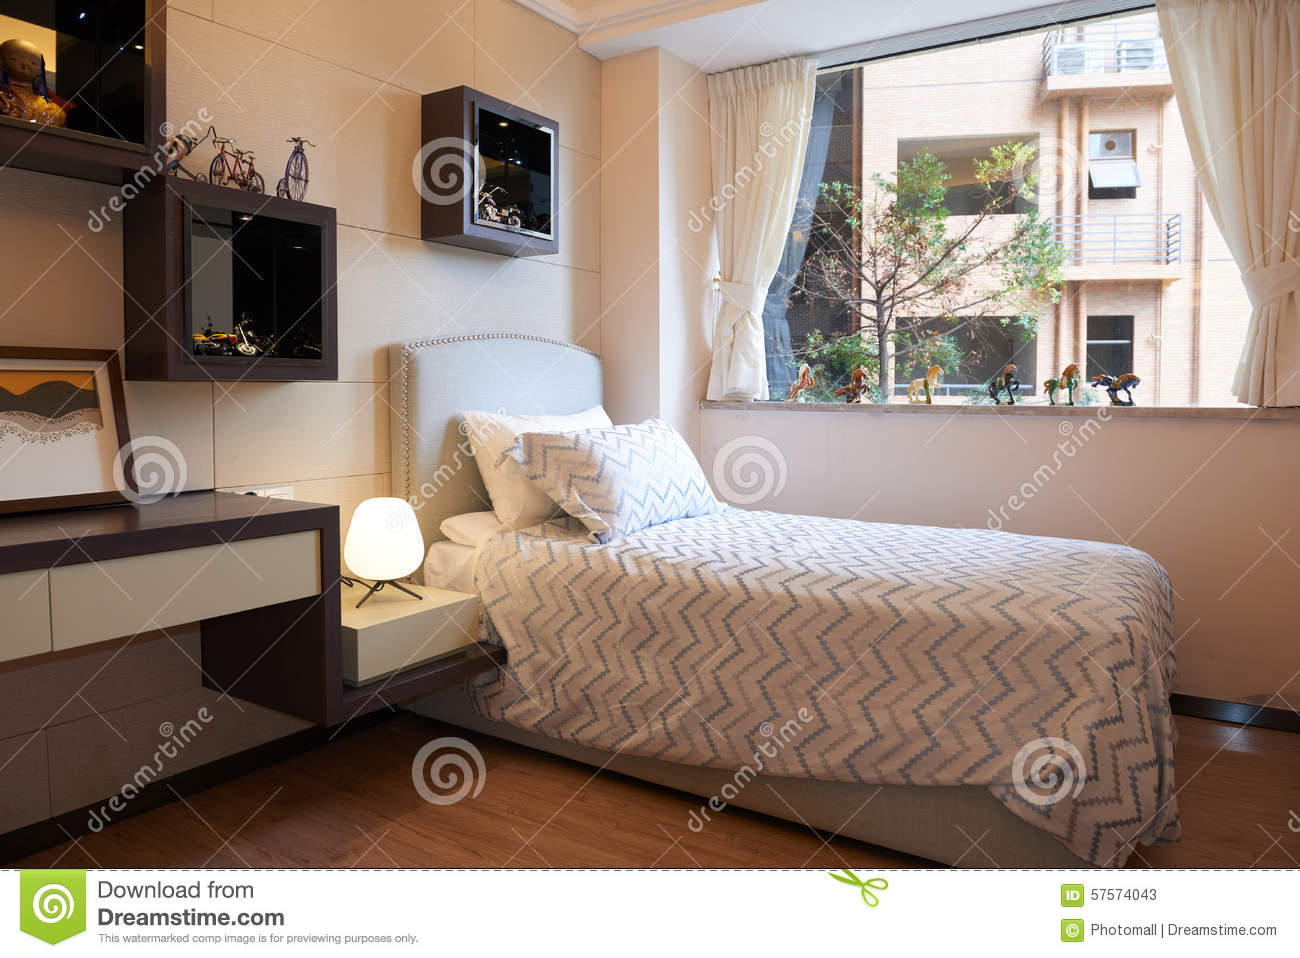 Petite chambre coucher moderne image stock image du for Chambre a coucher moderne